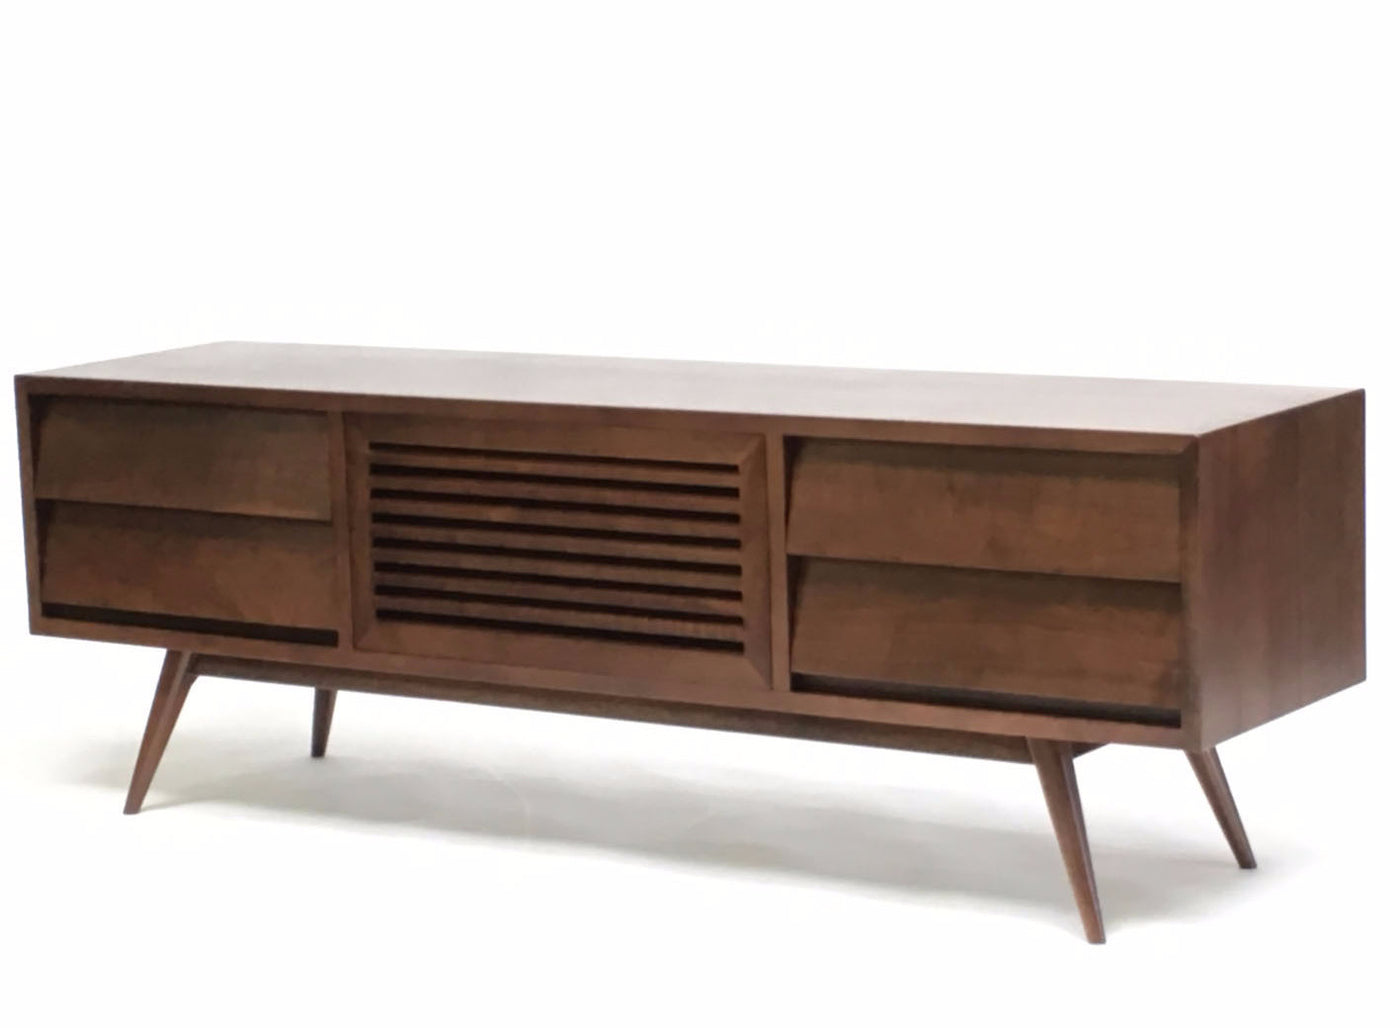 Mid century handcrafted modern furniture online gingko for Mid century furniture online